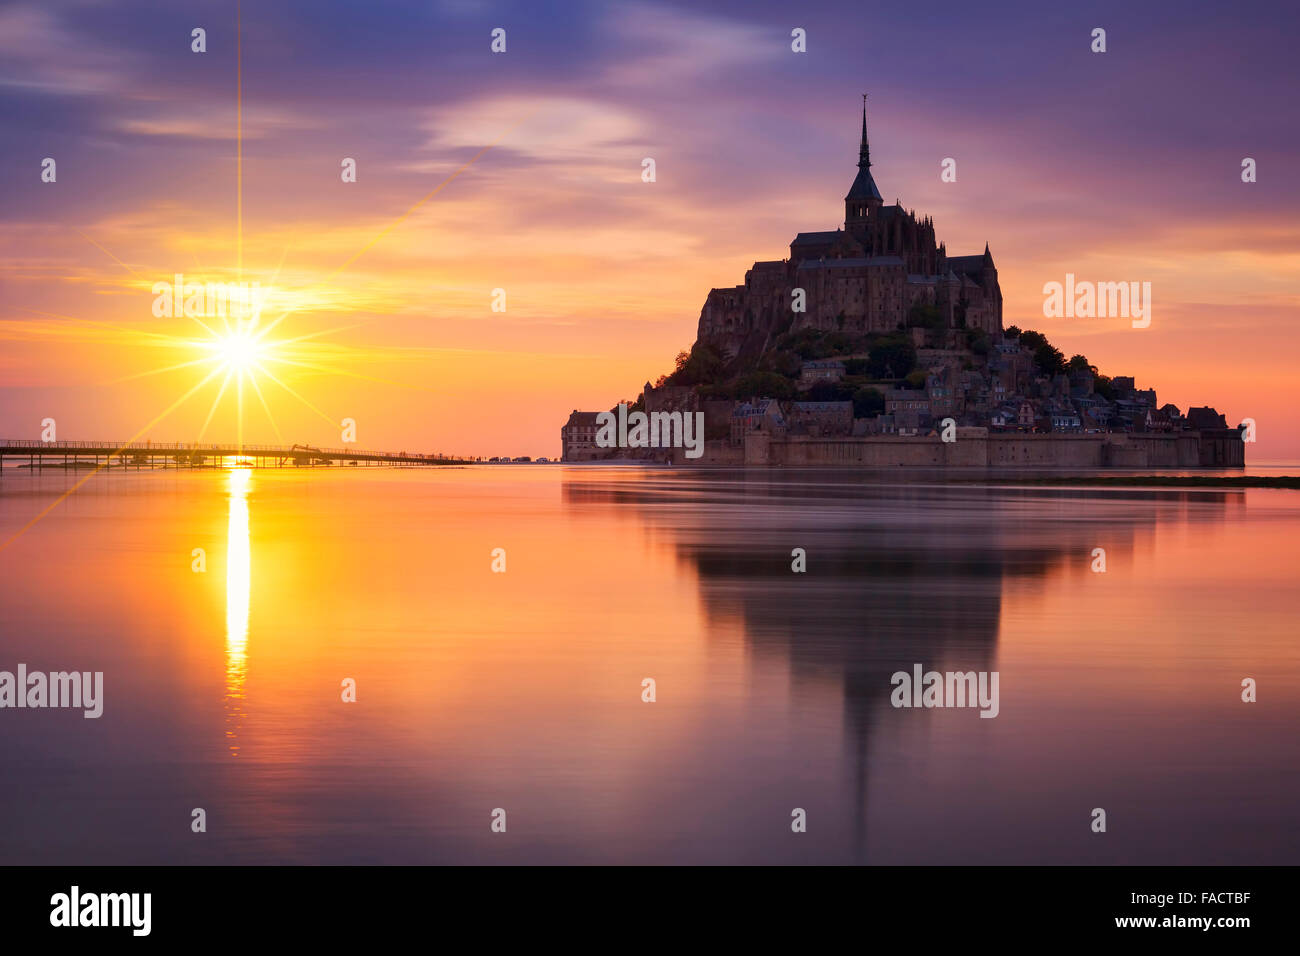 View of famous Mont-Saint-Michel at sunset, France. - Stock Image